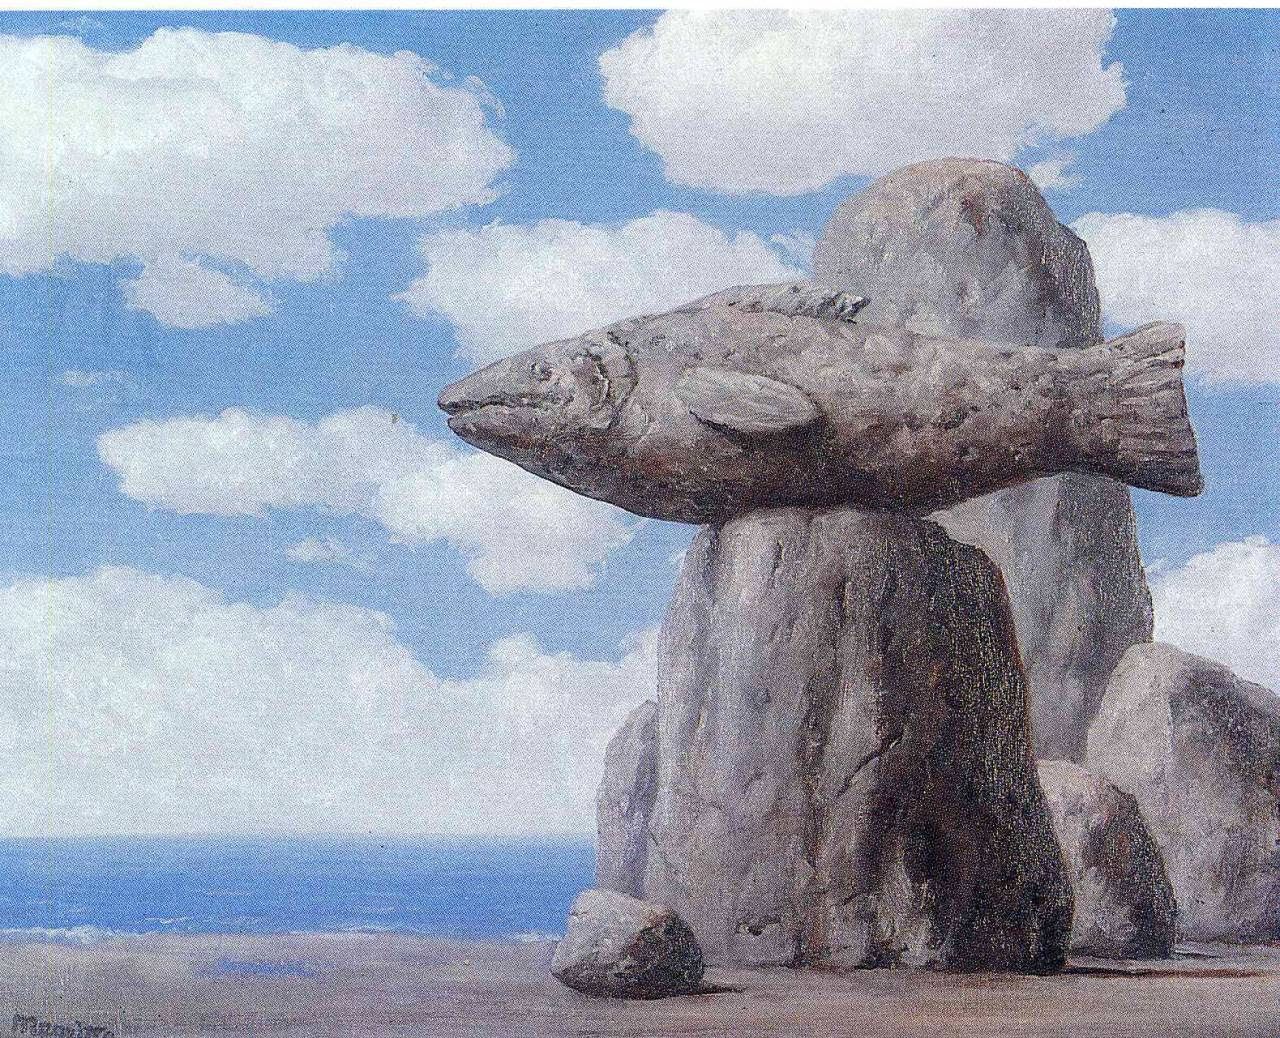 The connivance, 1965 Rene Magritte